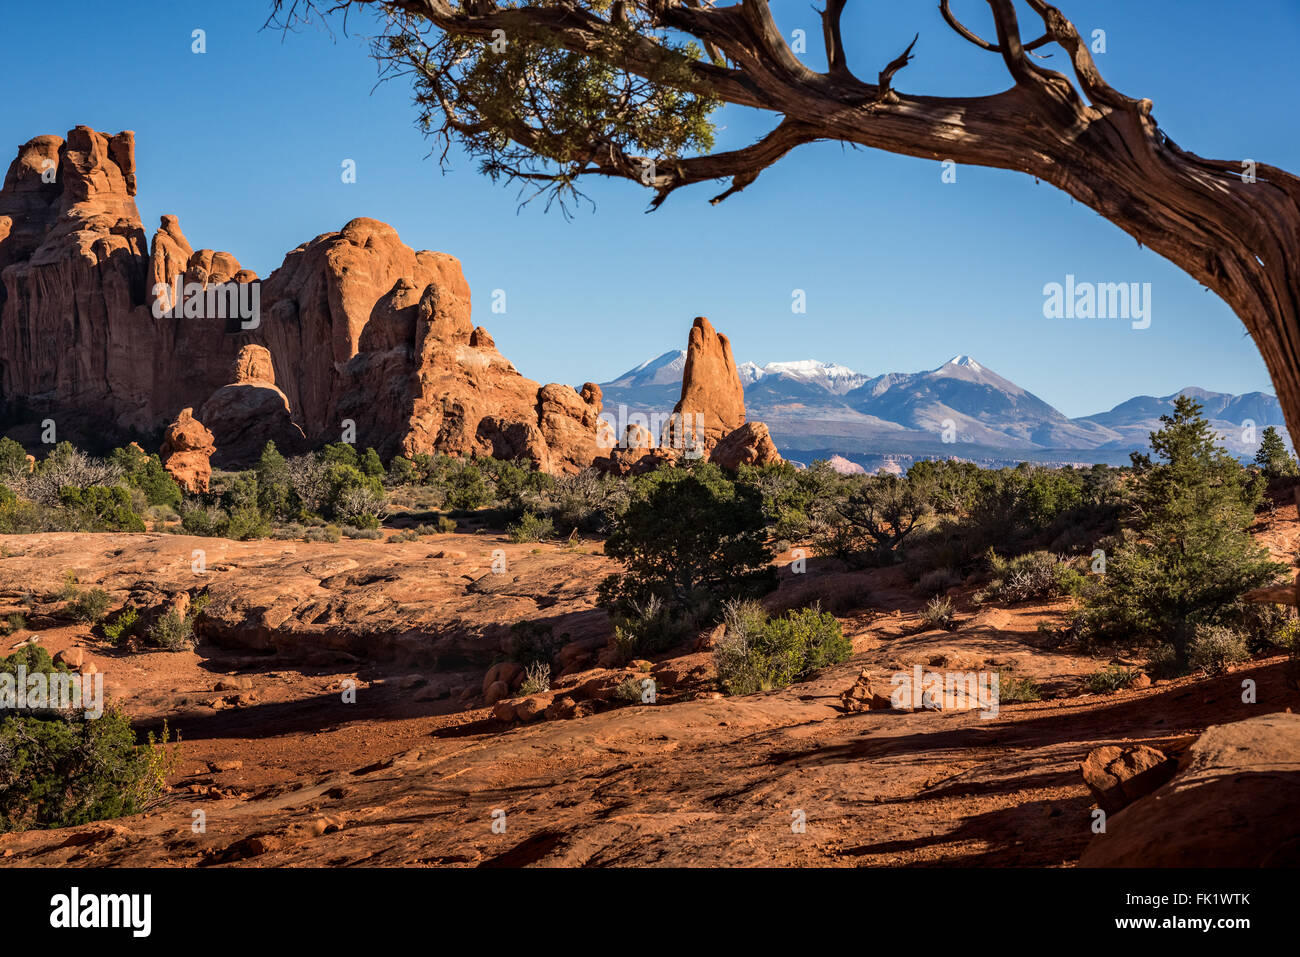 Arches National Park is a landscape of contrasting colors, landforms and textures. - Stock Image